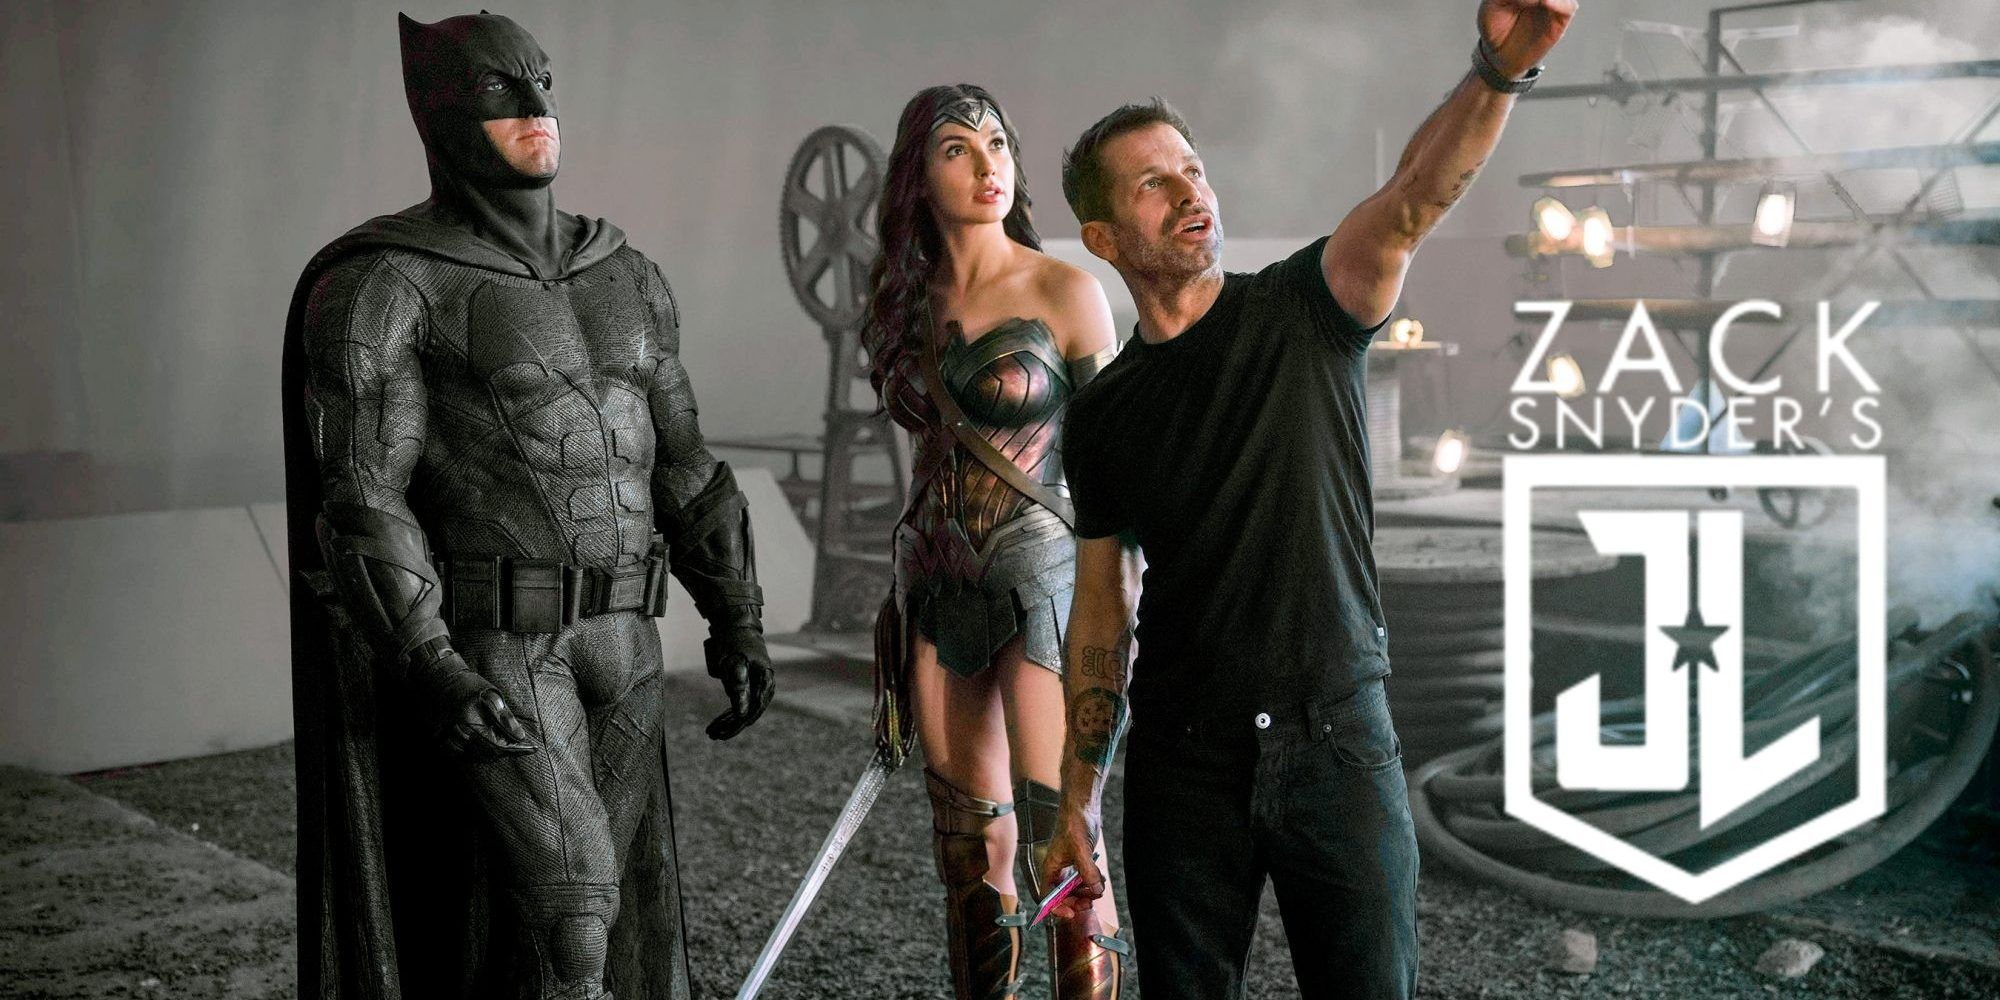 Justice League: Zack Snyder's Budget Could Be $20-30 Million